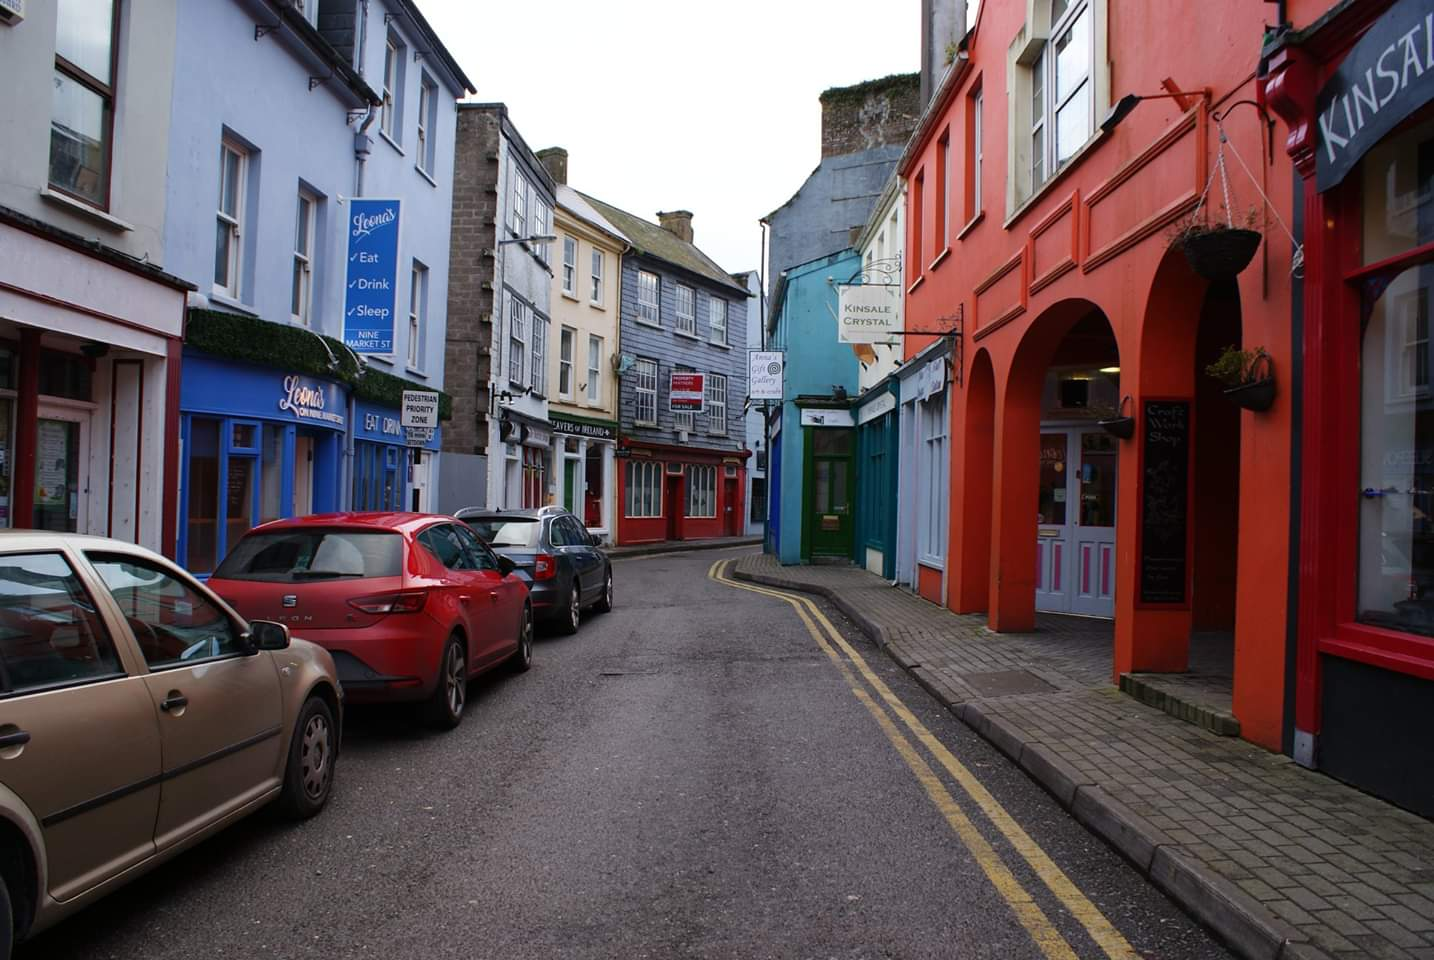 A small collection of shops in Kinsale's town center  Photo provided by Patrick Salerno '21